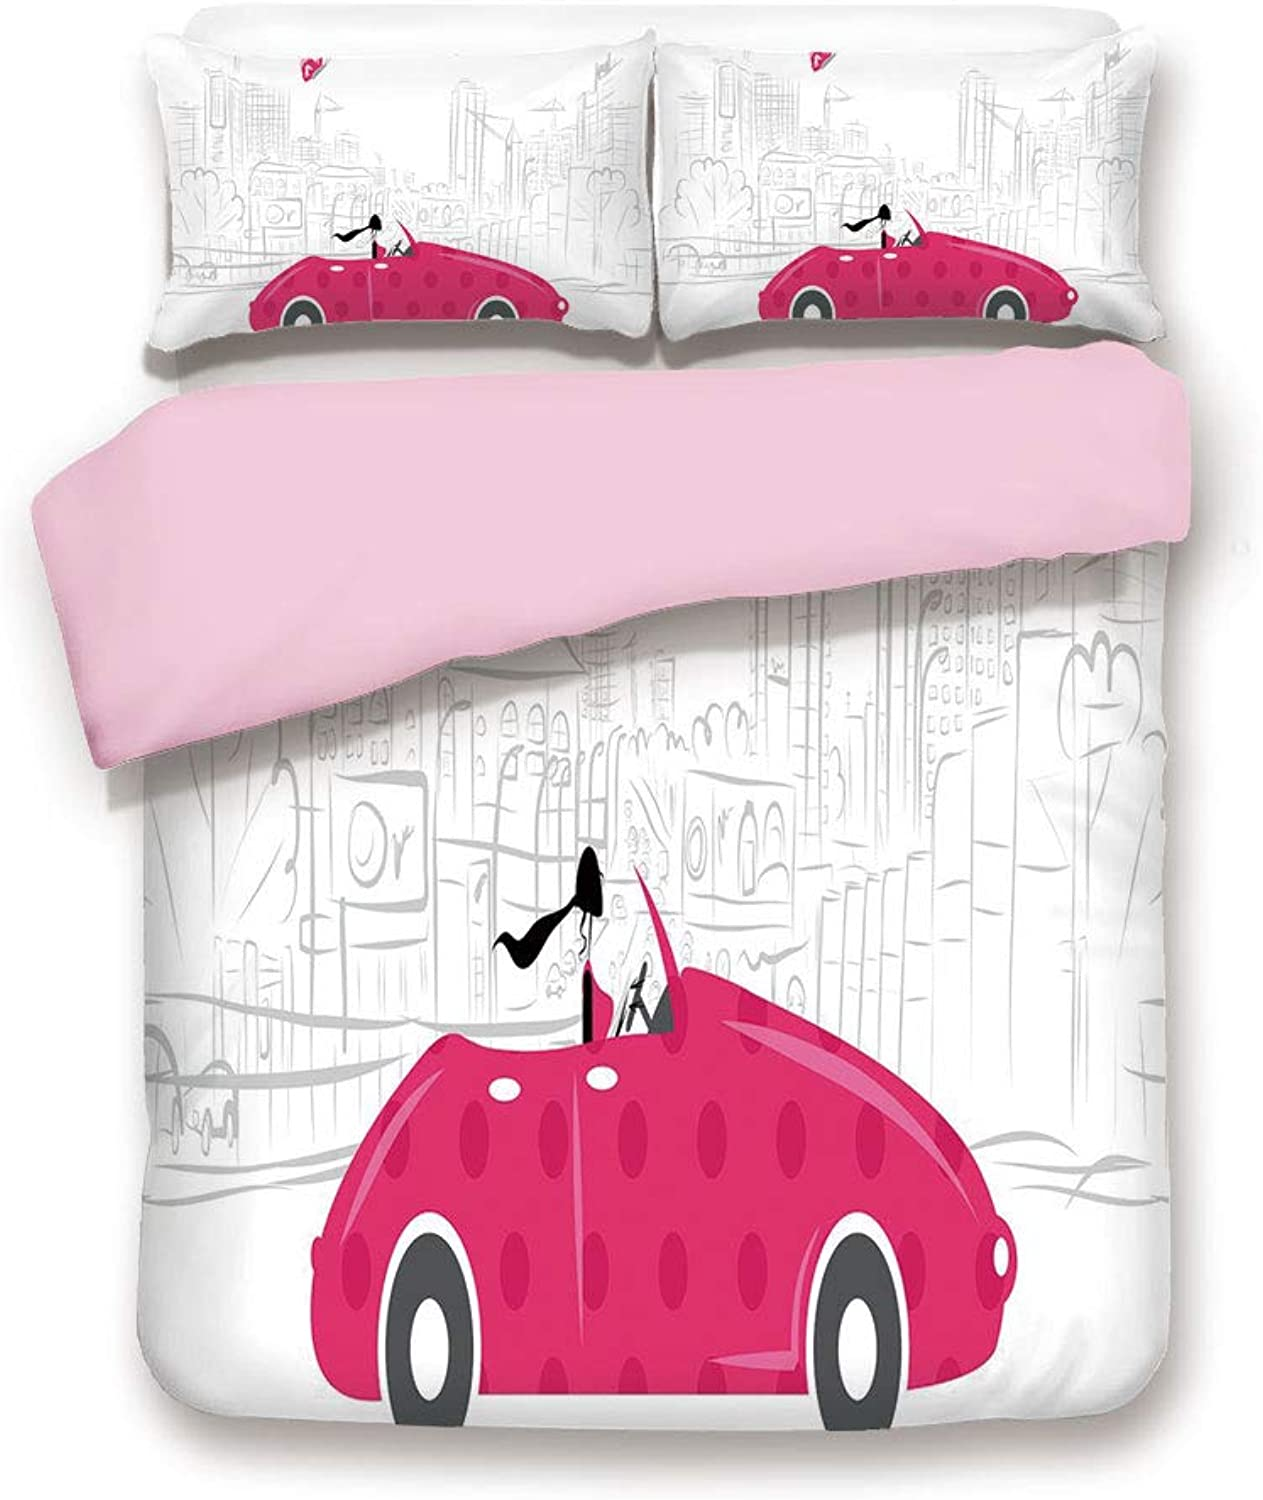 Pink Duvet Cover Set& xFF0F;FULL Size& xFF0F;Woman Driving Pink Vintage Car Sketchy Cityscape and Butterfly Girls Cartoon& xFF0F;Decorative 3 Piece Bedding Set with 2 Pillow Sham& xFF0F;Best Gift For Girls Women& xFF0F;Hot Pink Grey Bl